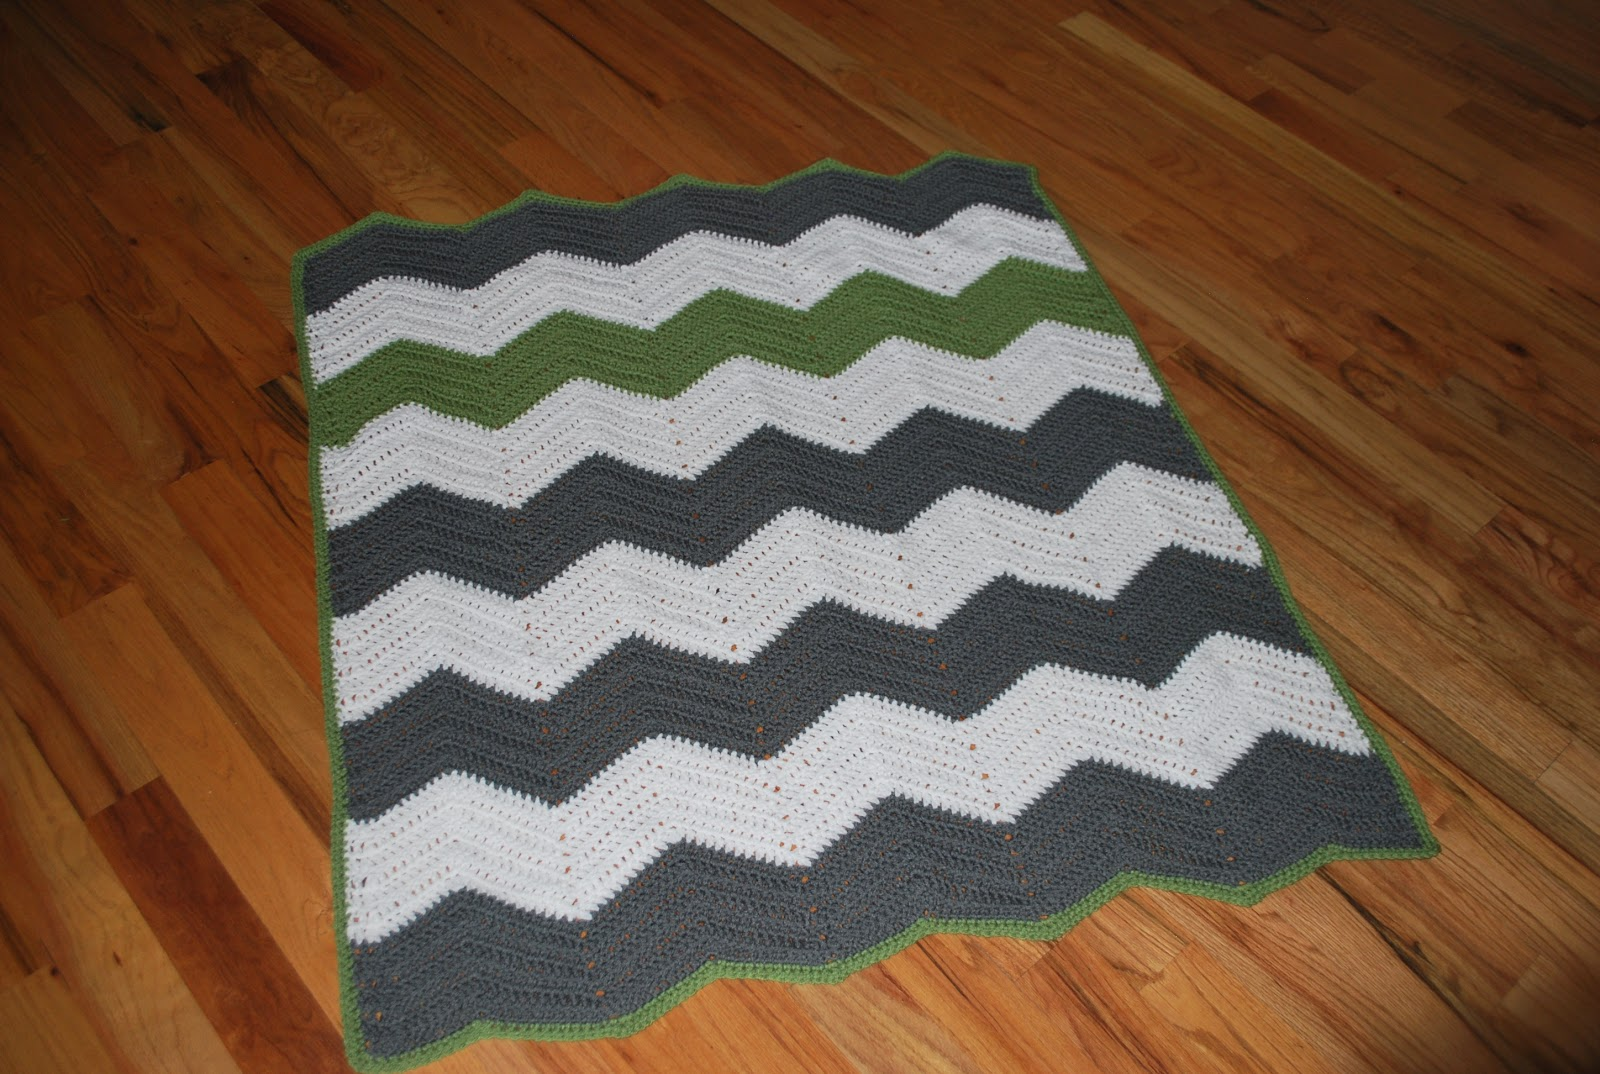 Crochet Pattern Chevron Baby Blanket : Creative Highs: Crochet Chevron Blanket Free Pattern